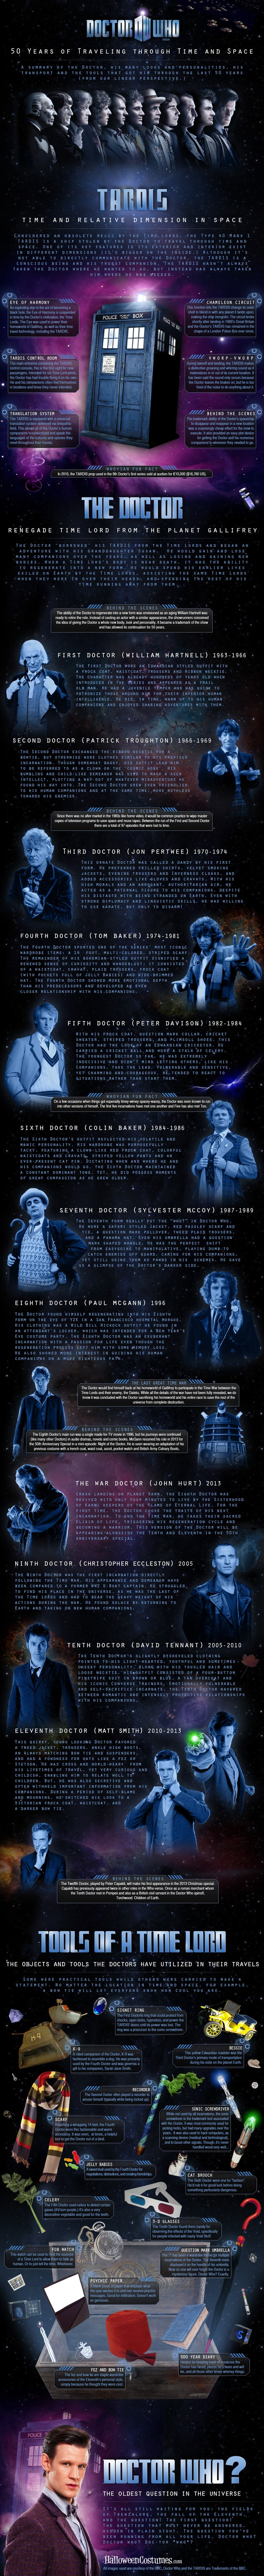 DOCTOT WHO 50th Anniversary Costume Infographic